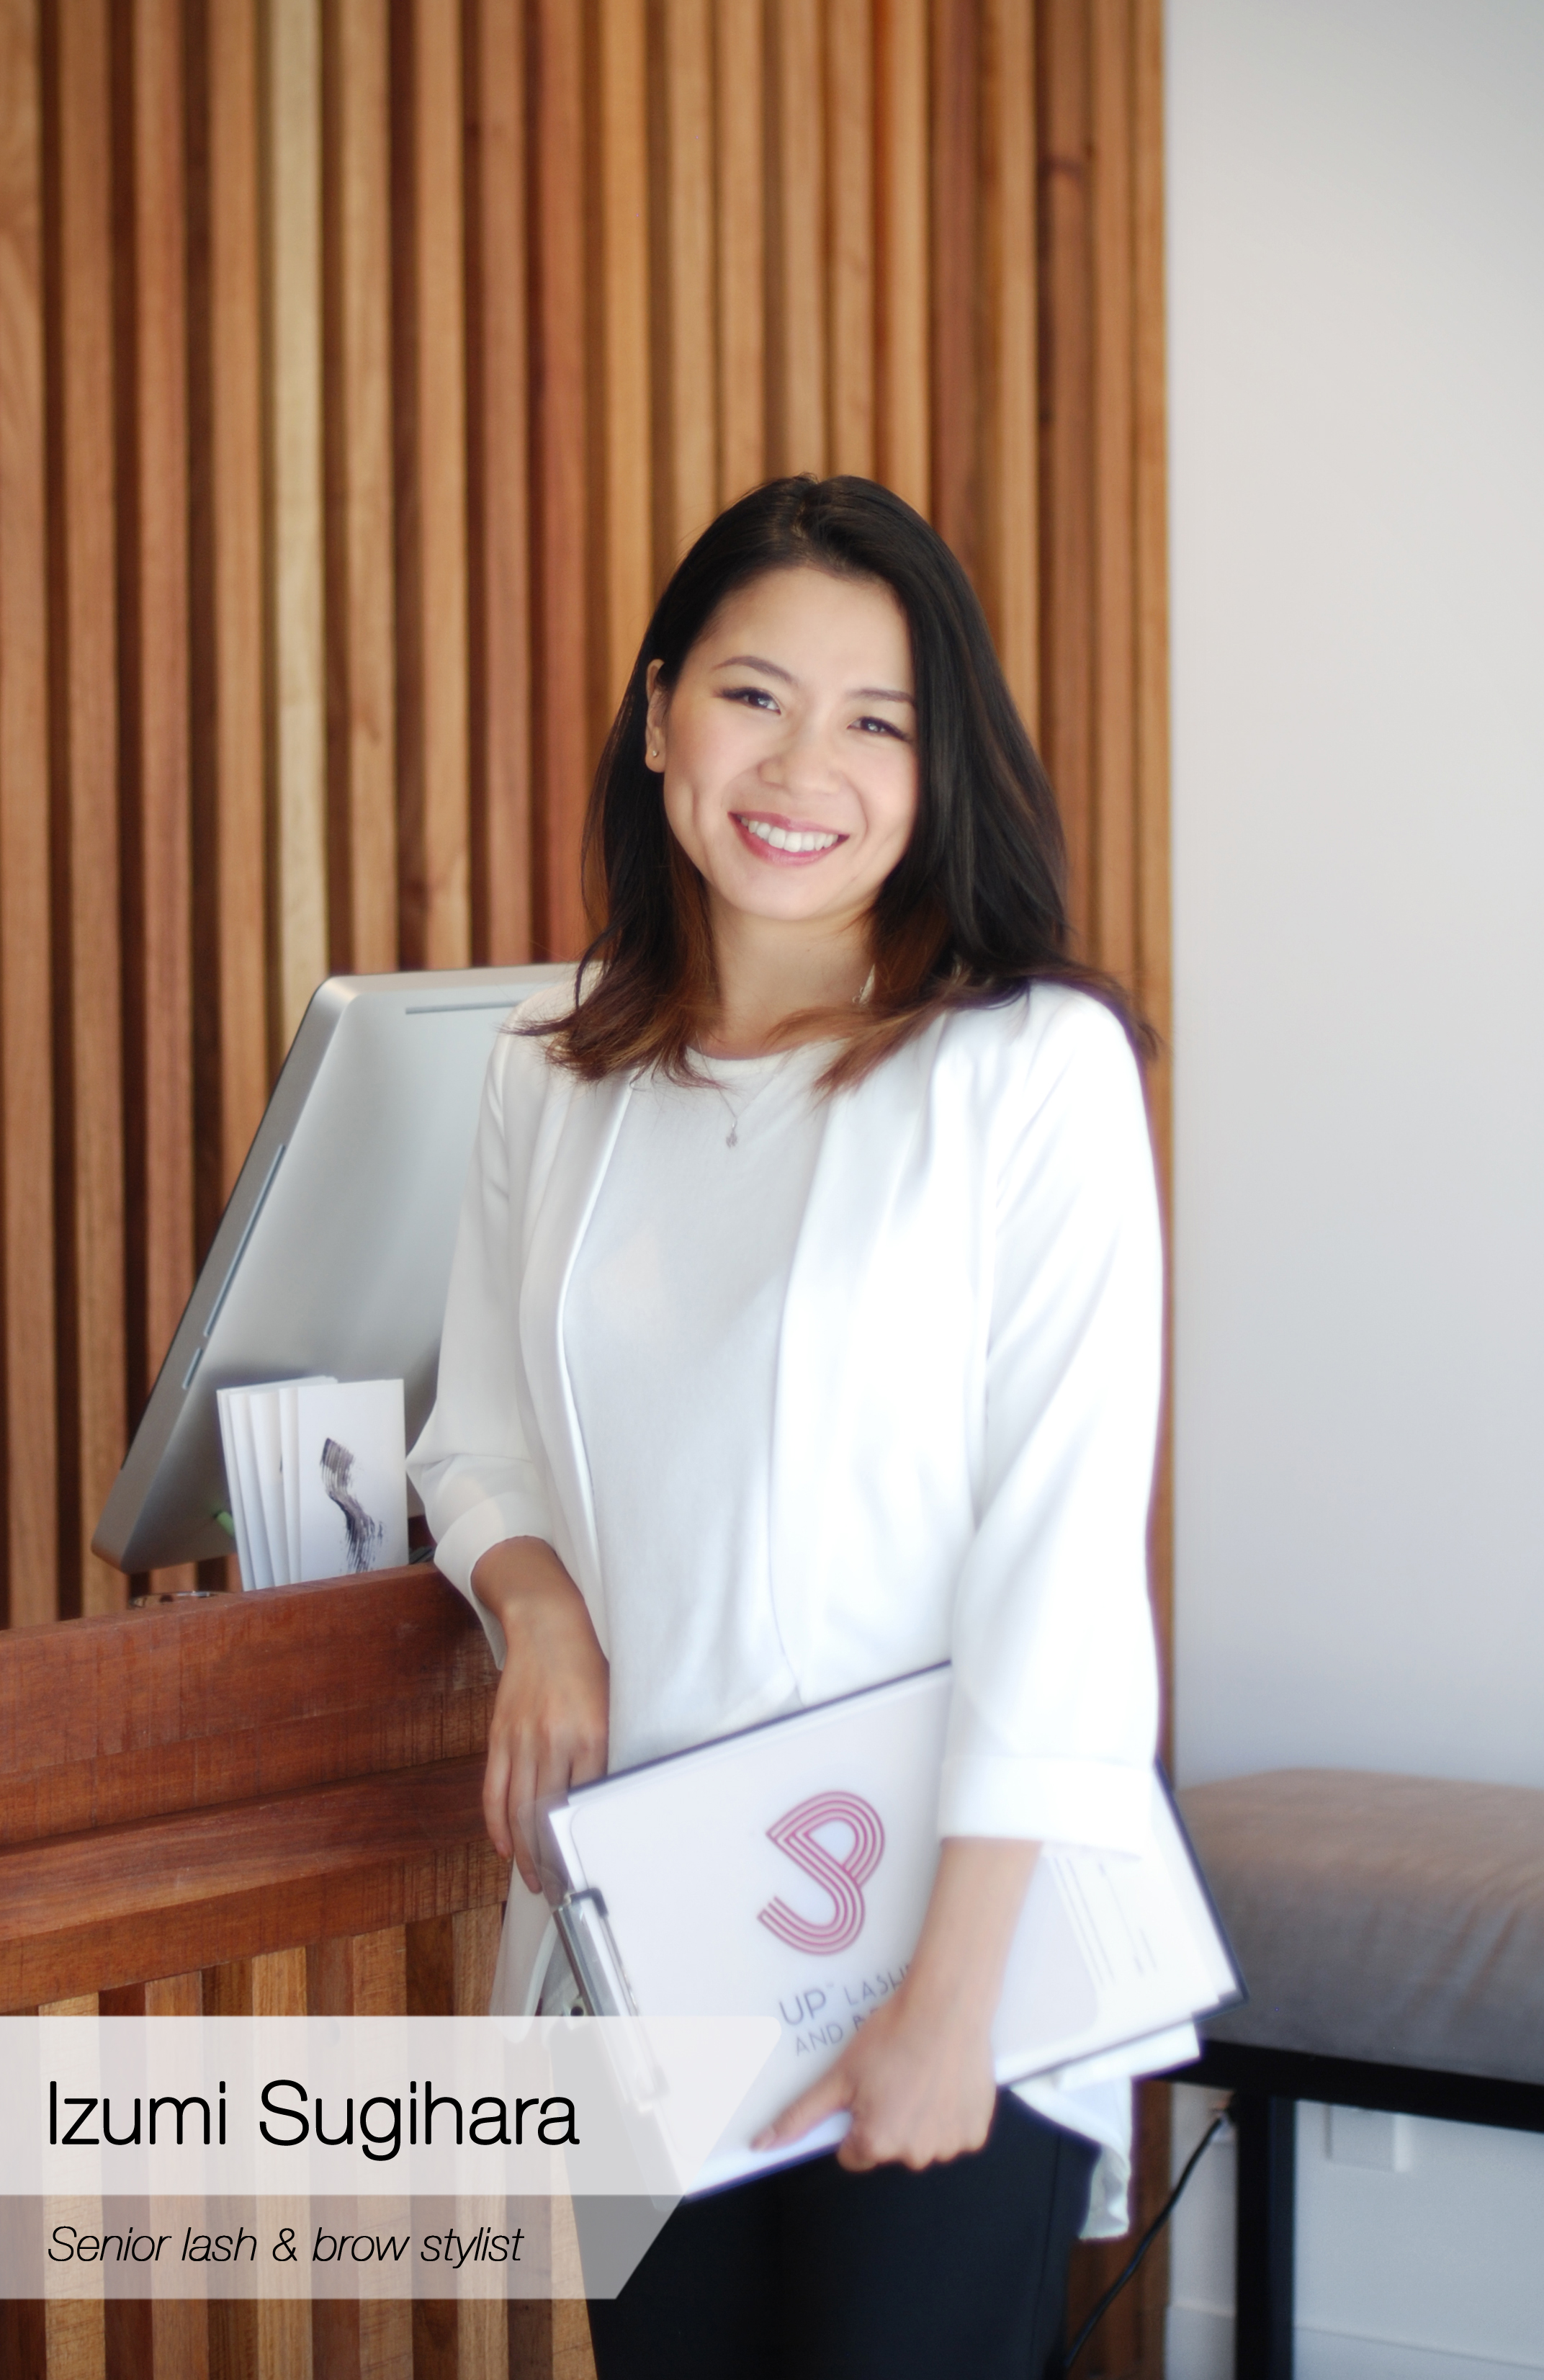 Senior stylist: Izumi Sugihara  Izumi joined UP with 10 years lash and brow experience in Japan, Canada and Australia. Her unique design skills and international experience extend the high standard of quality expected at UP Lashes and Brows.